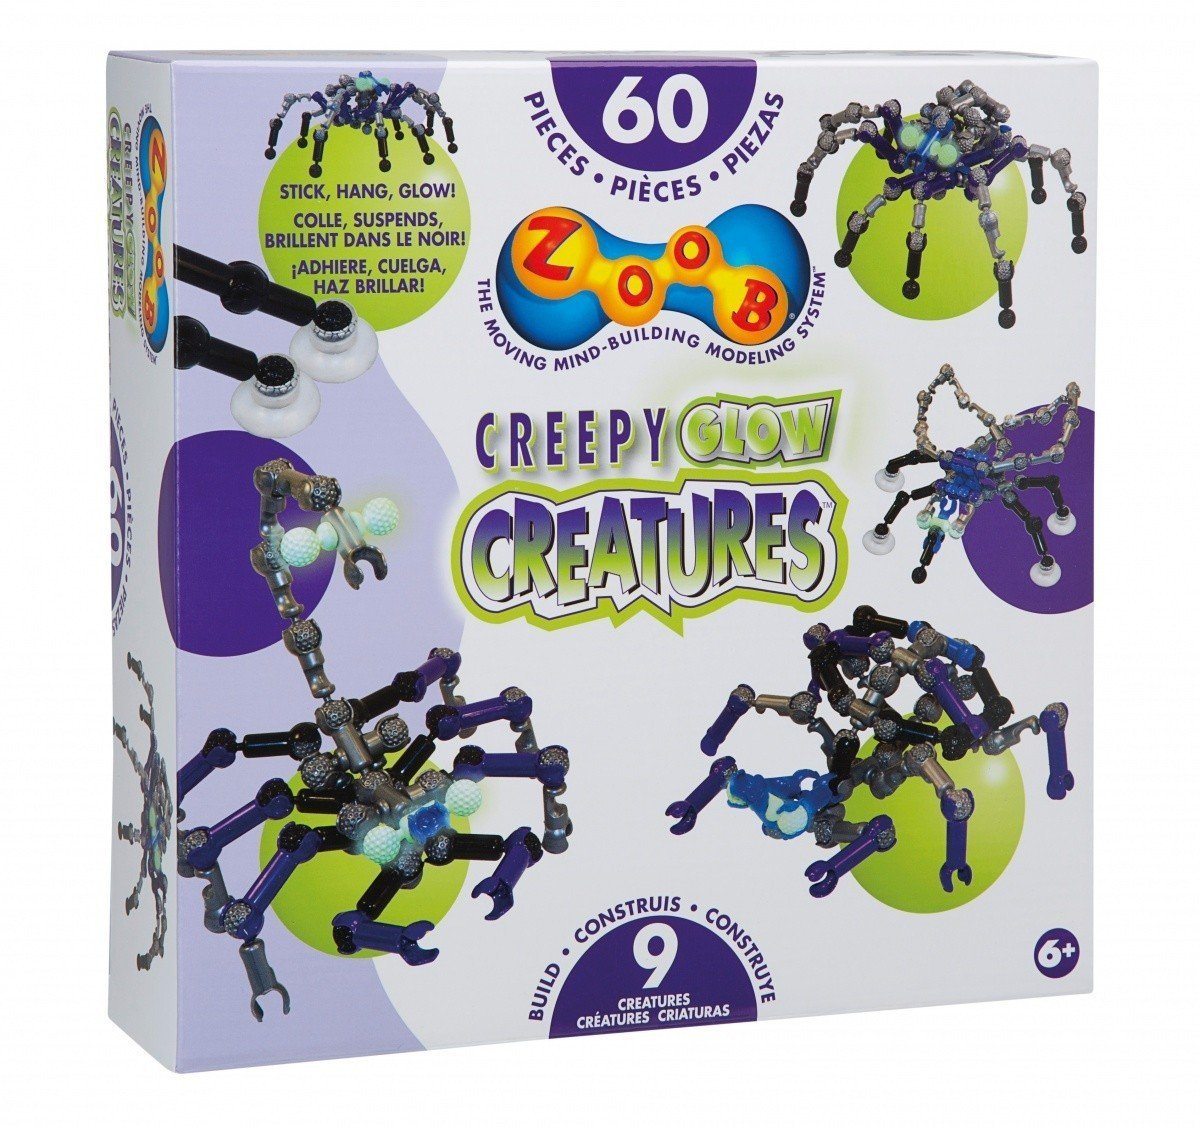 Creepy glow creatures